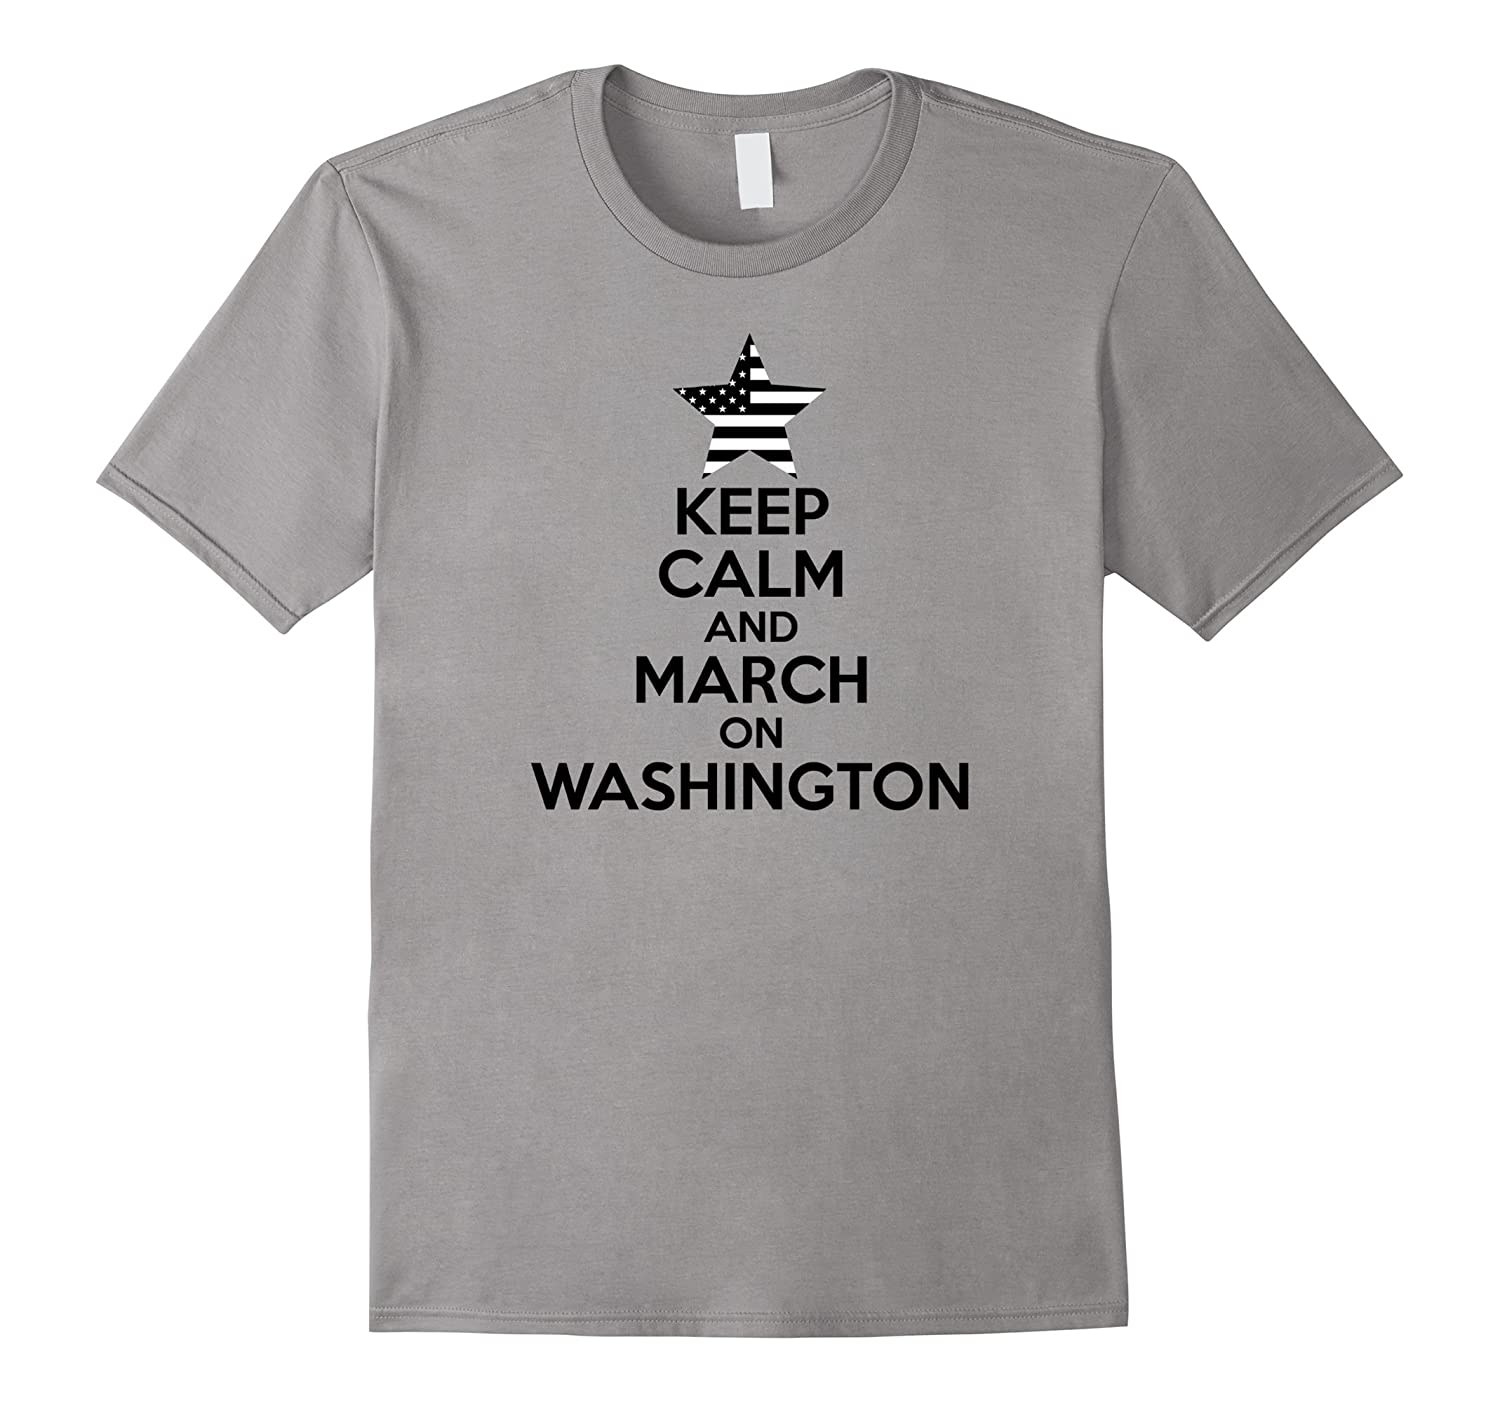 Keep Calm And Women's March On Washington, DC 2017 T-Shirt-Art